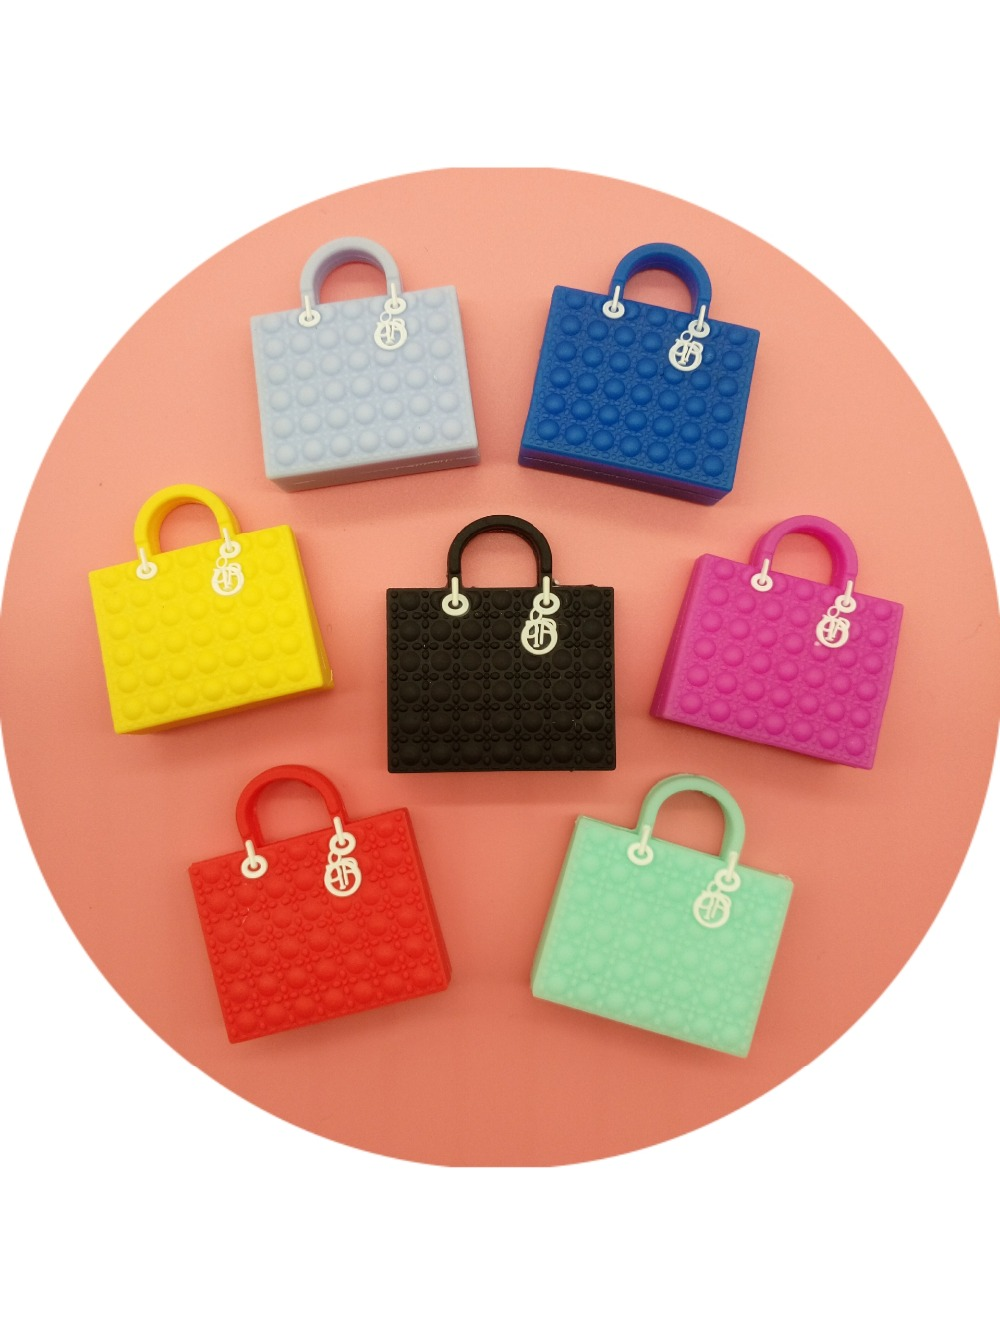 1PCS Cute Blyth Doll Bag Suitable For Barbi Pullip Momoko Azone BJD 1/6 Doll's Handbag Accessories Toy